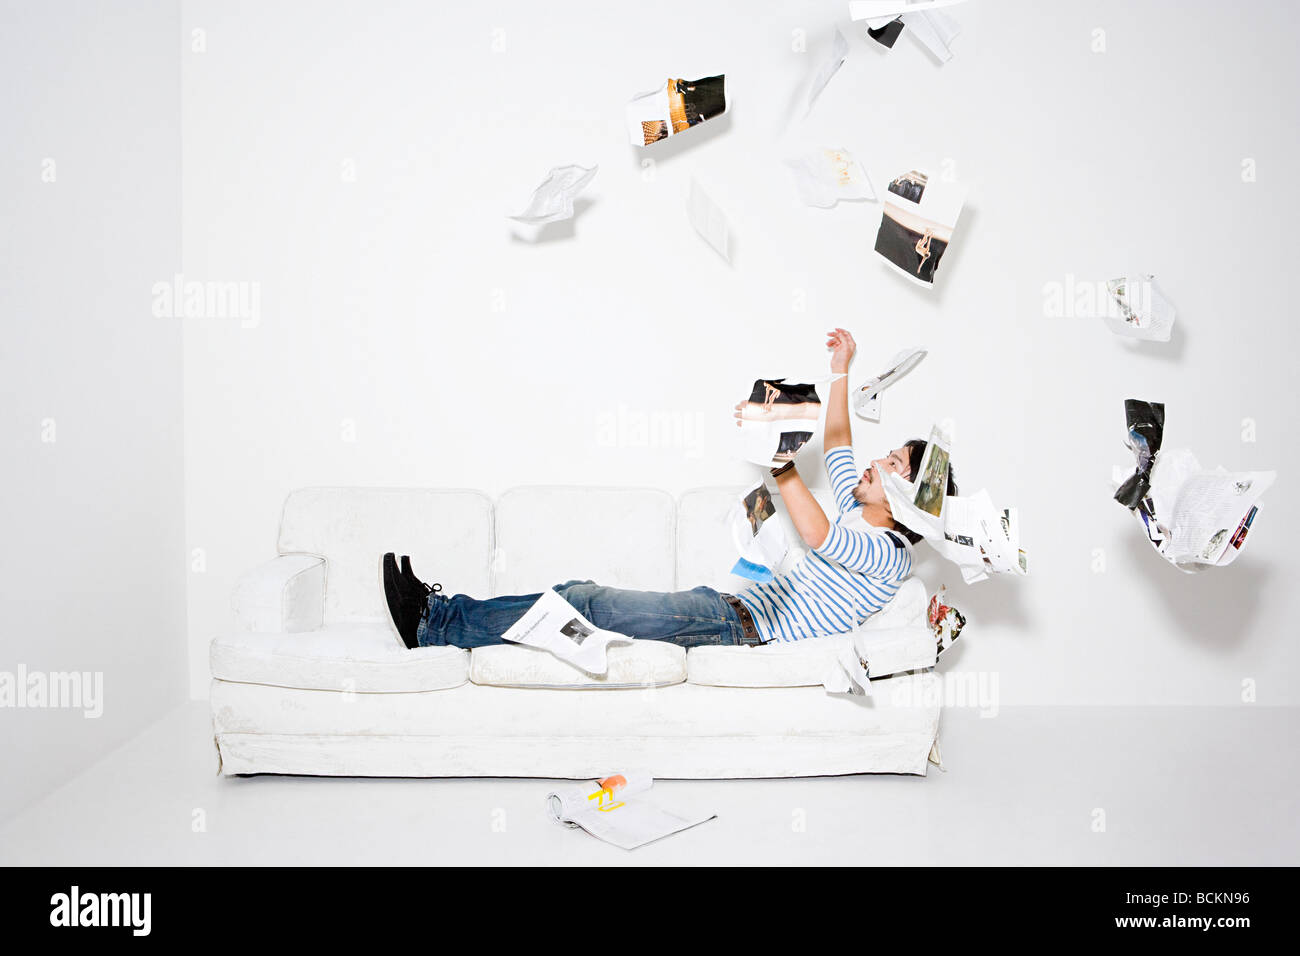 Man throwing pages of a magazine - Stock Image